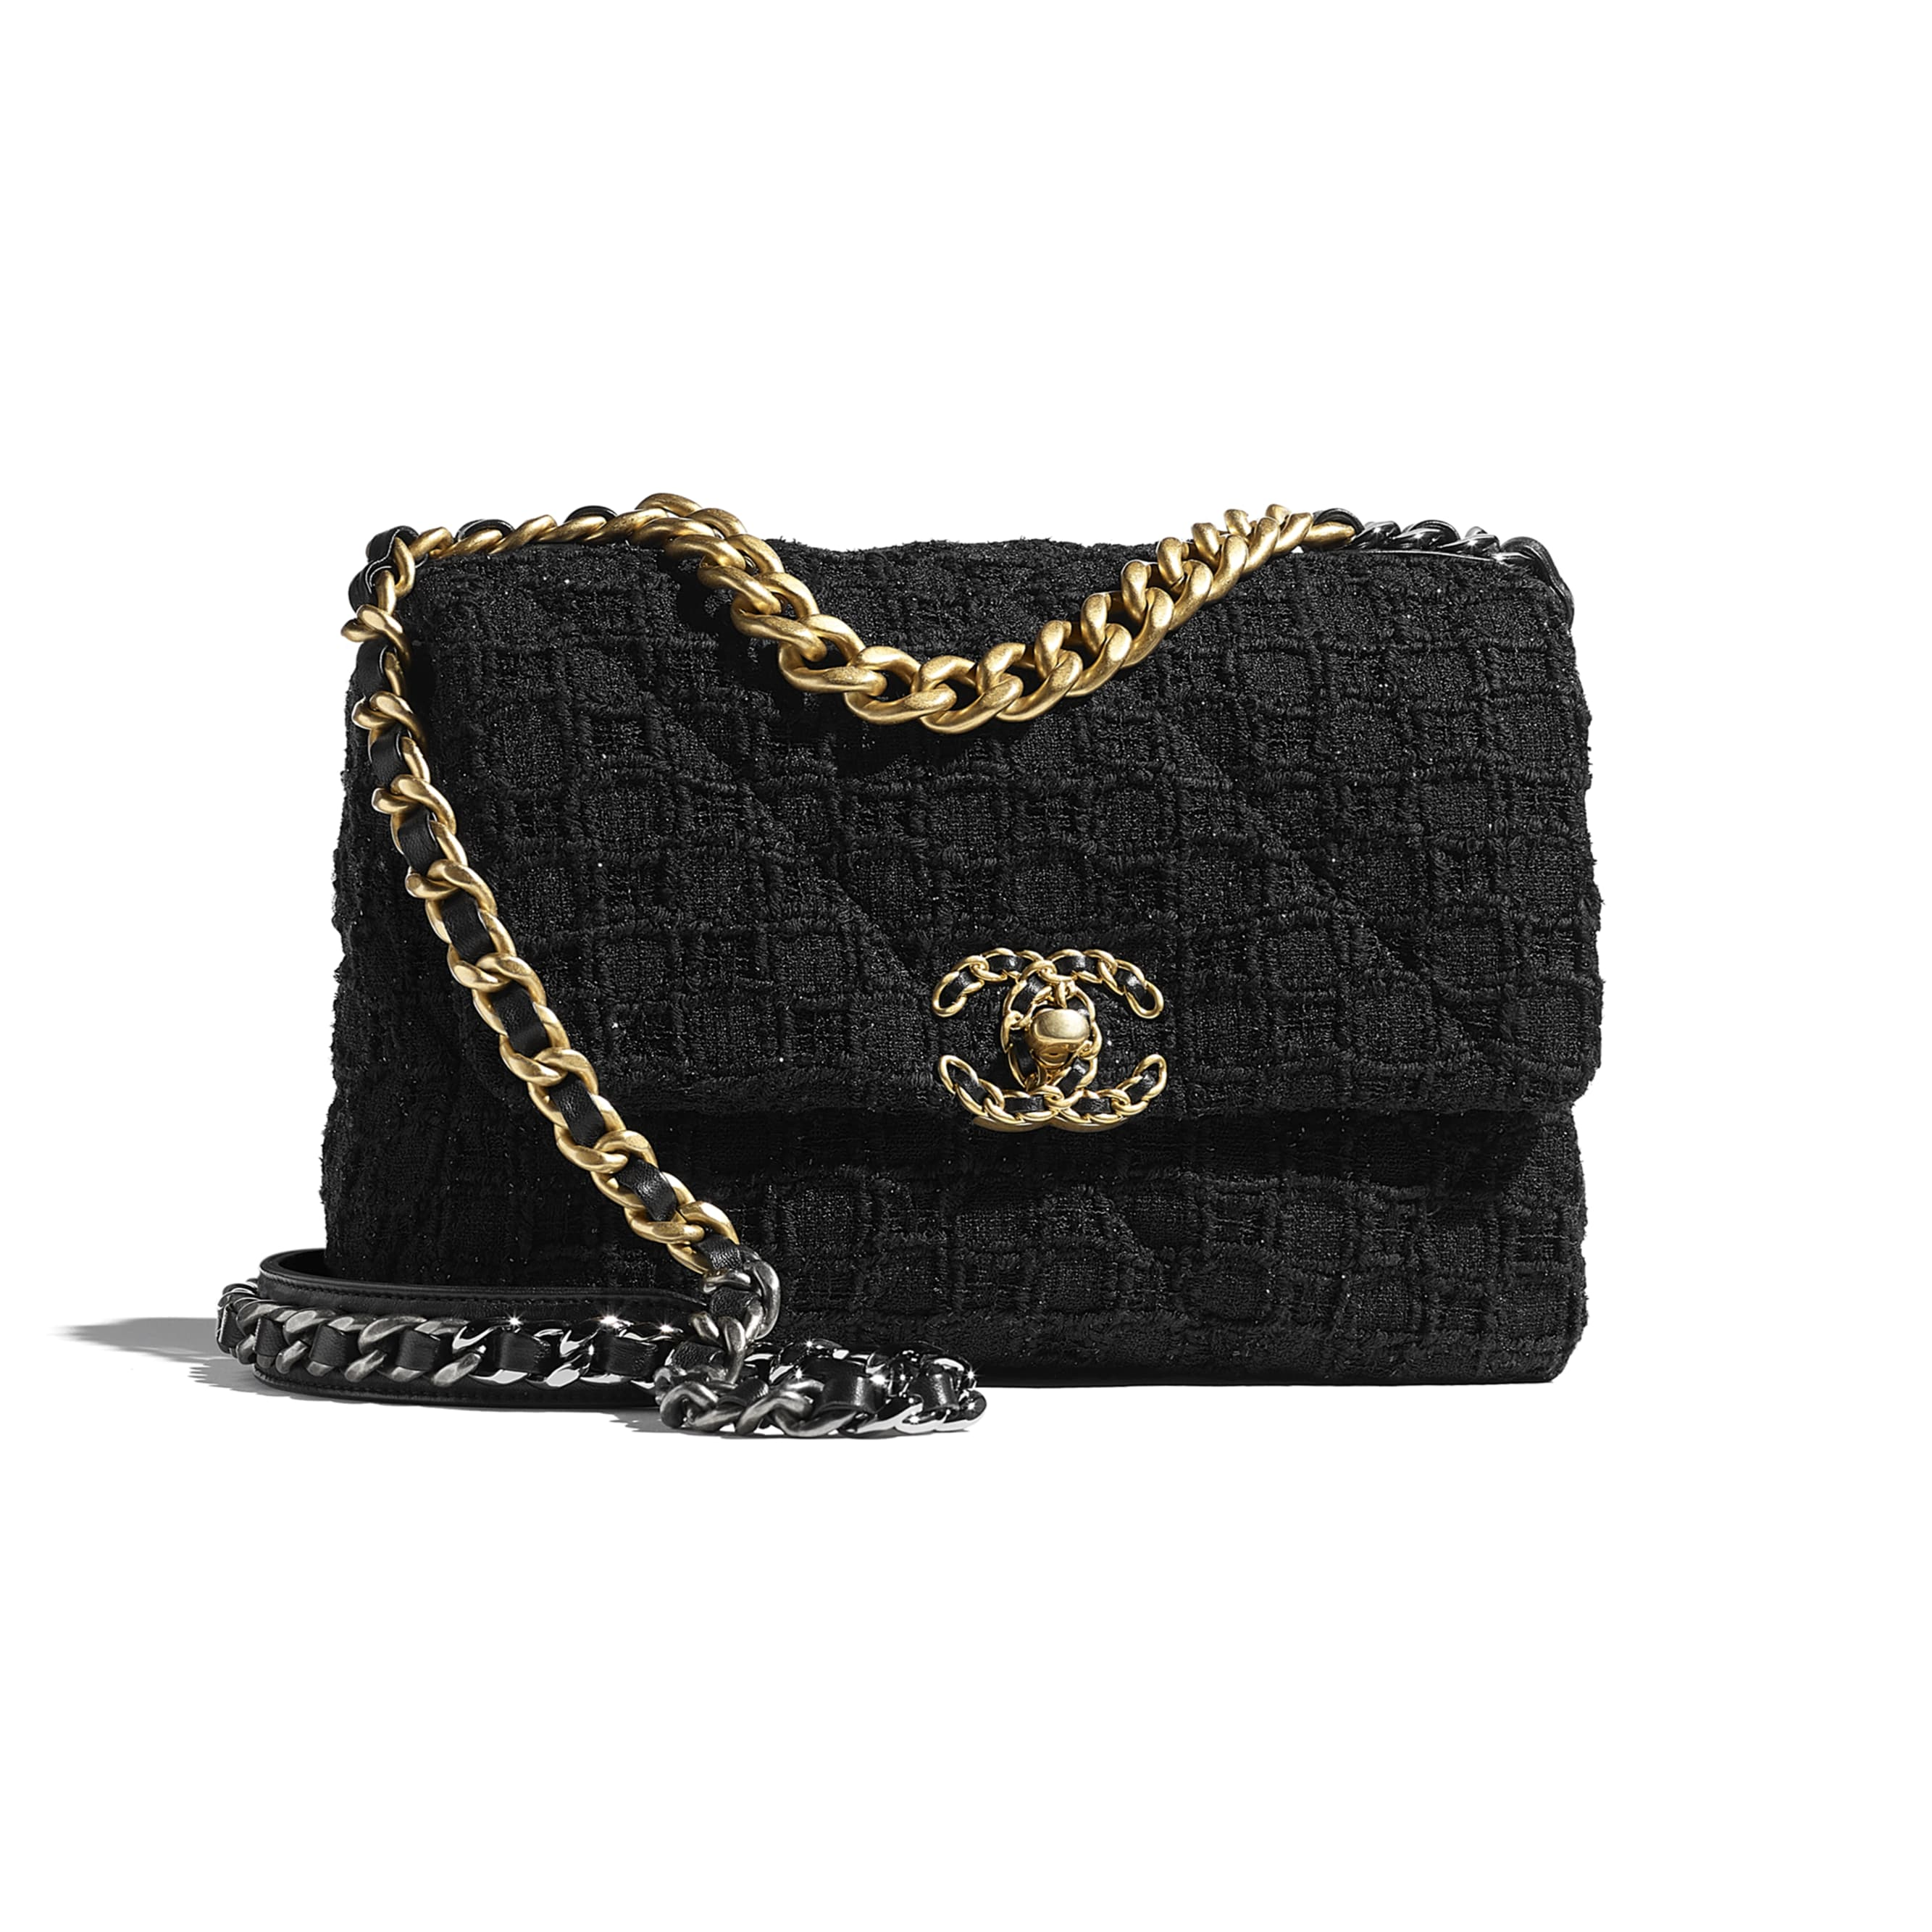 CHANEL 19 Flap Bag - Black - Tweed, Gold-Tone, Silver-Tone & Ruthenium-Finish Metal - CHANEL - Default view - see standard sized version